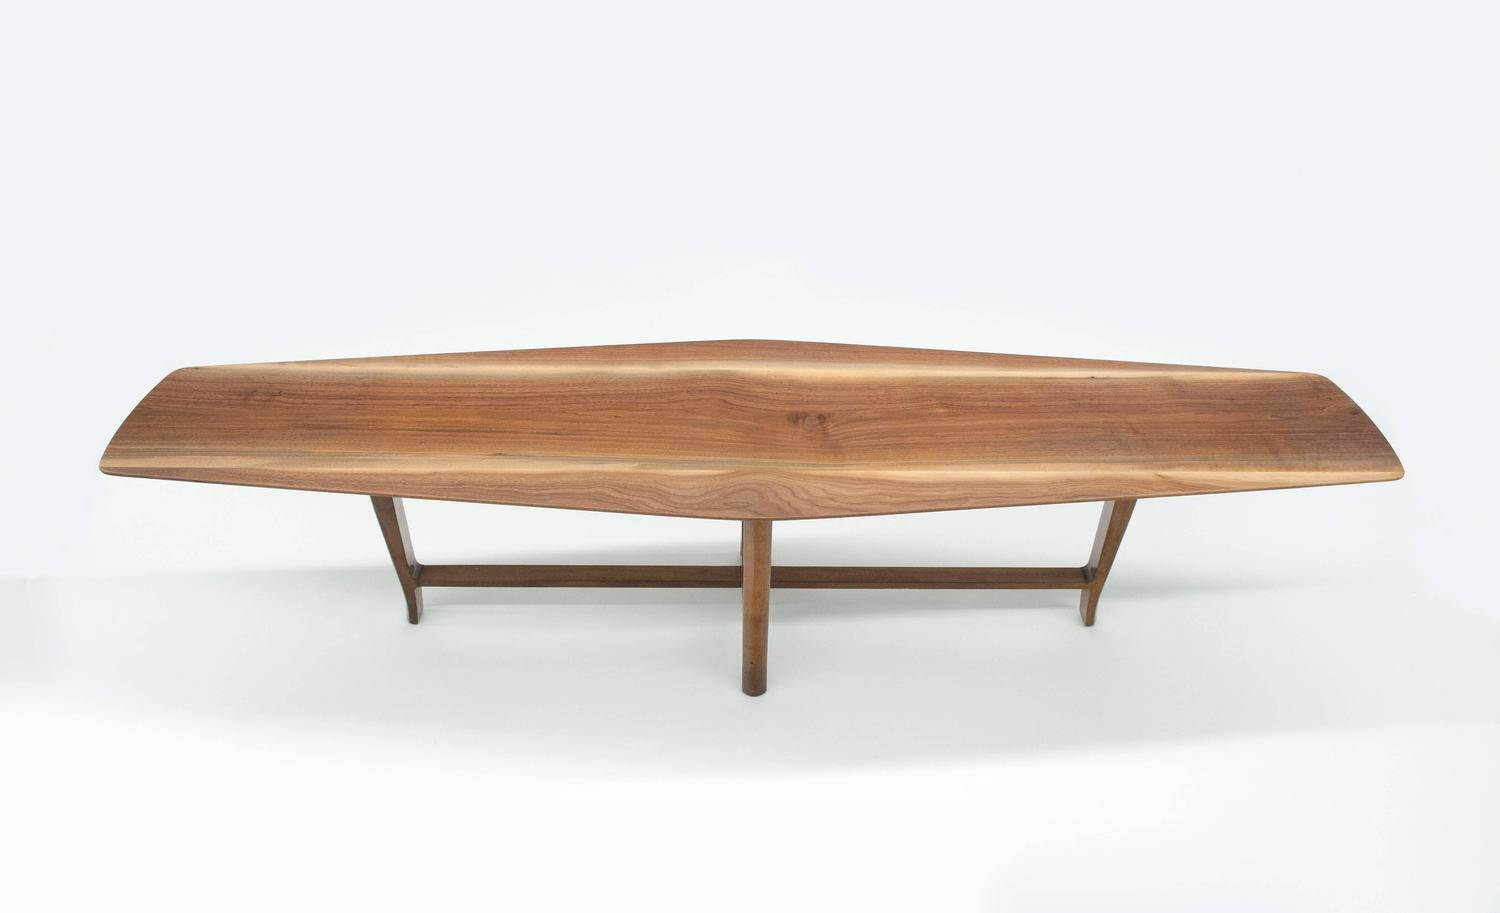 Rare Coffee Table By Edward Wormley For Dunbar At 1stdibs